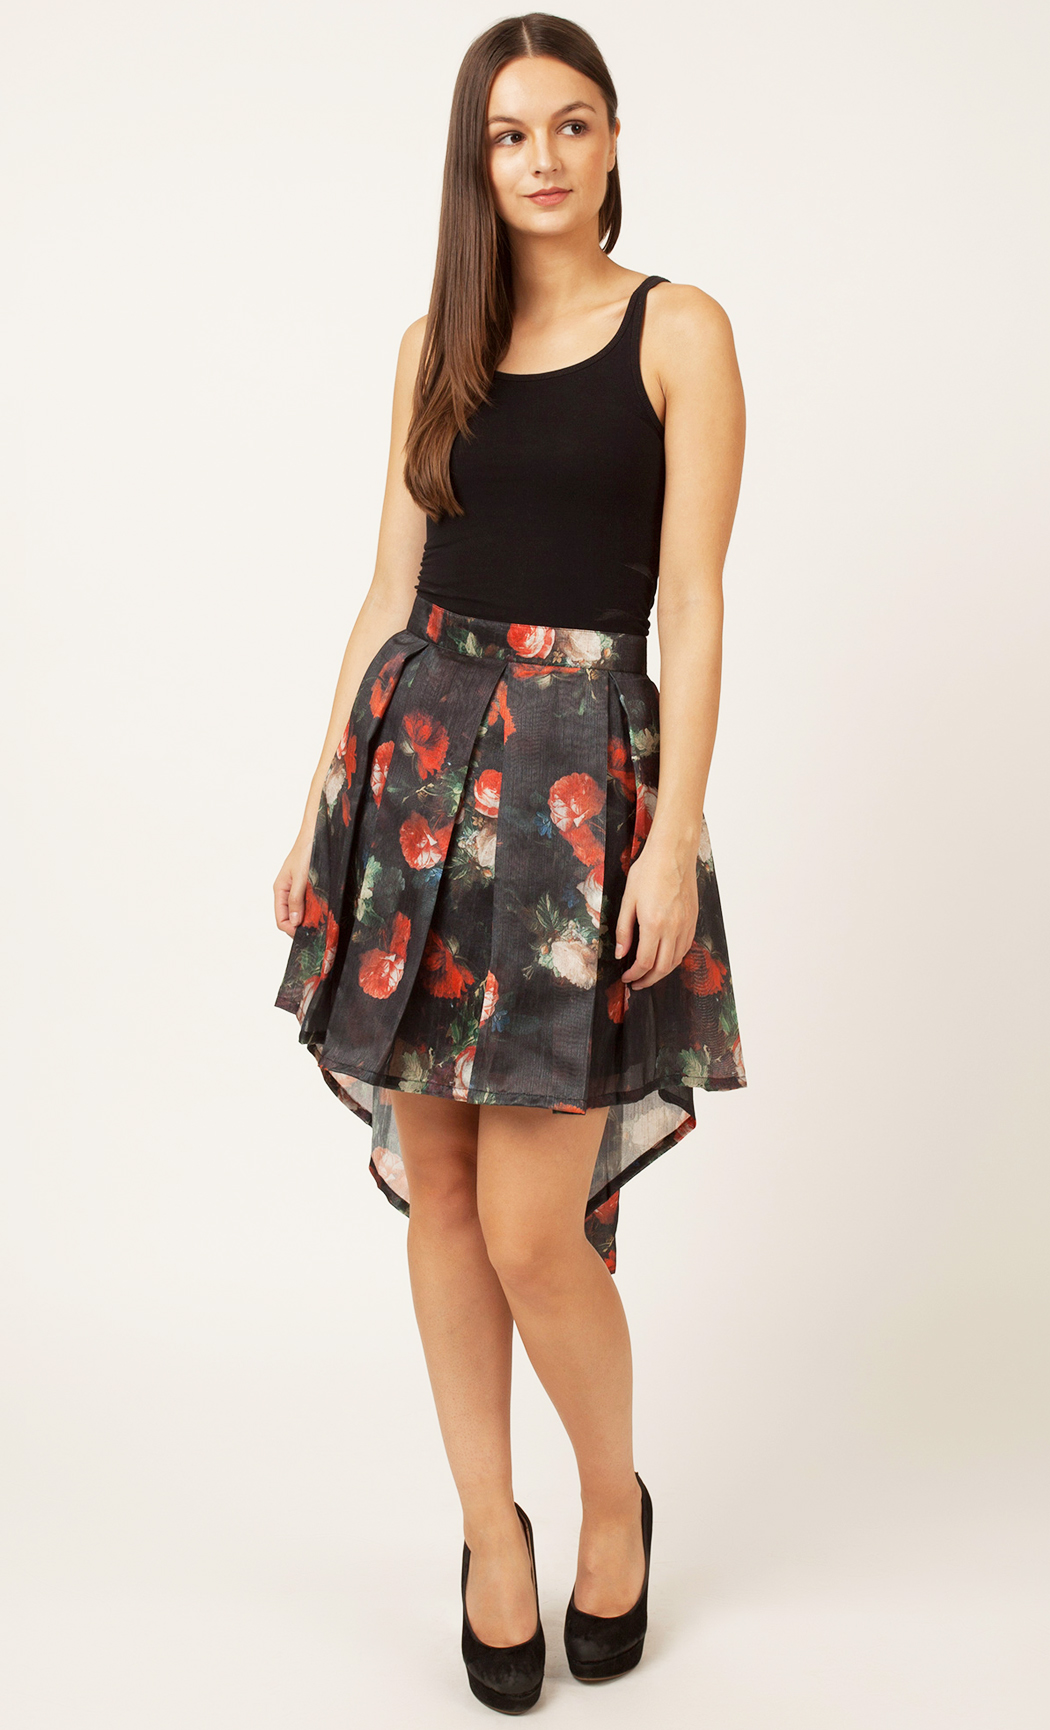 Red and Black Floral Printed Skirt. Buy Online